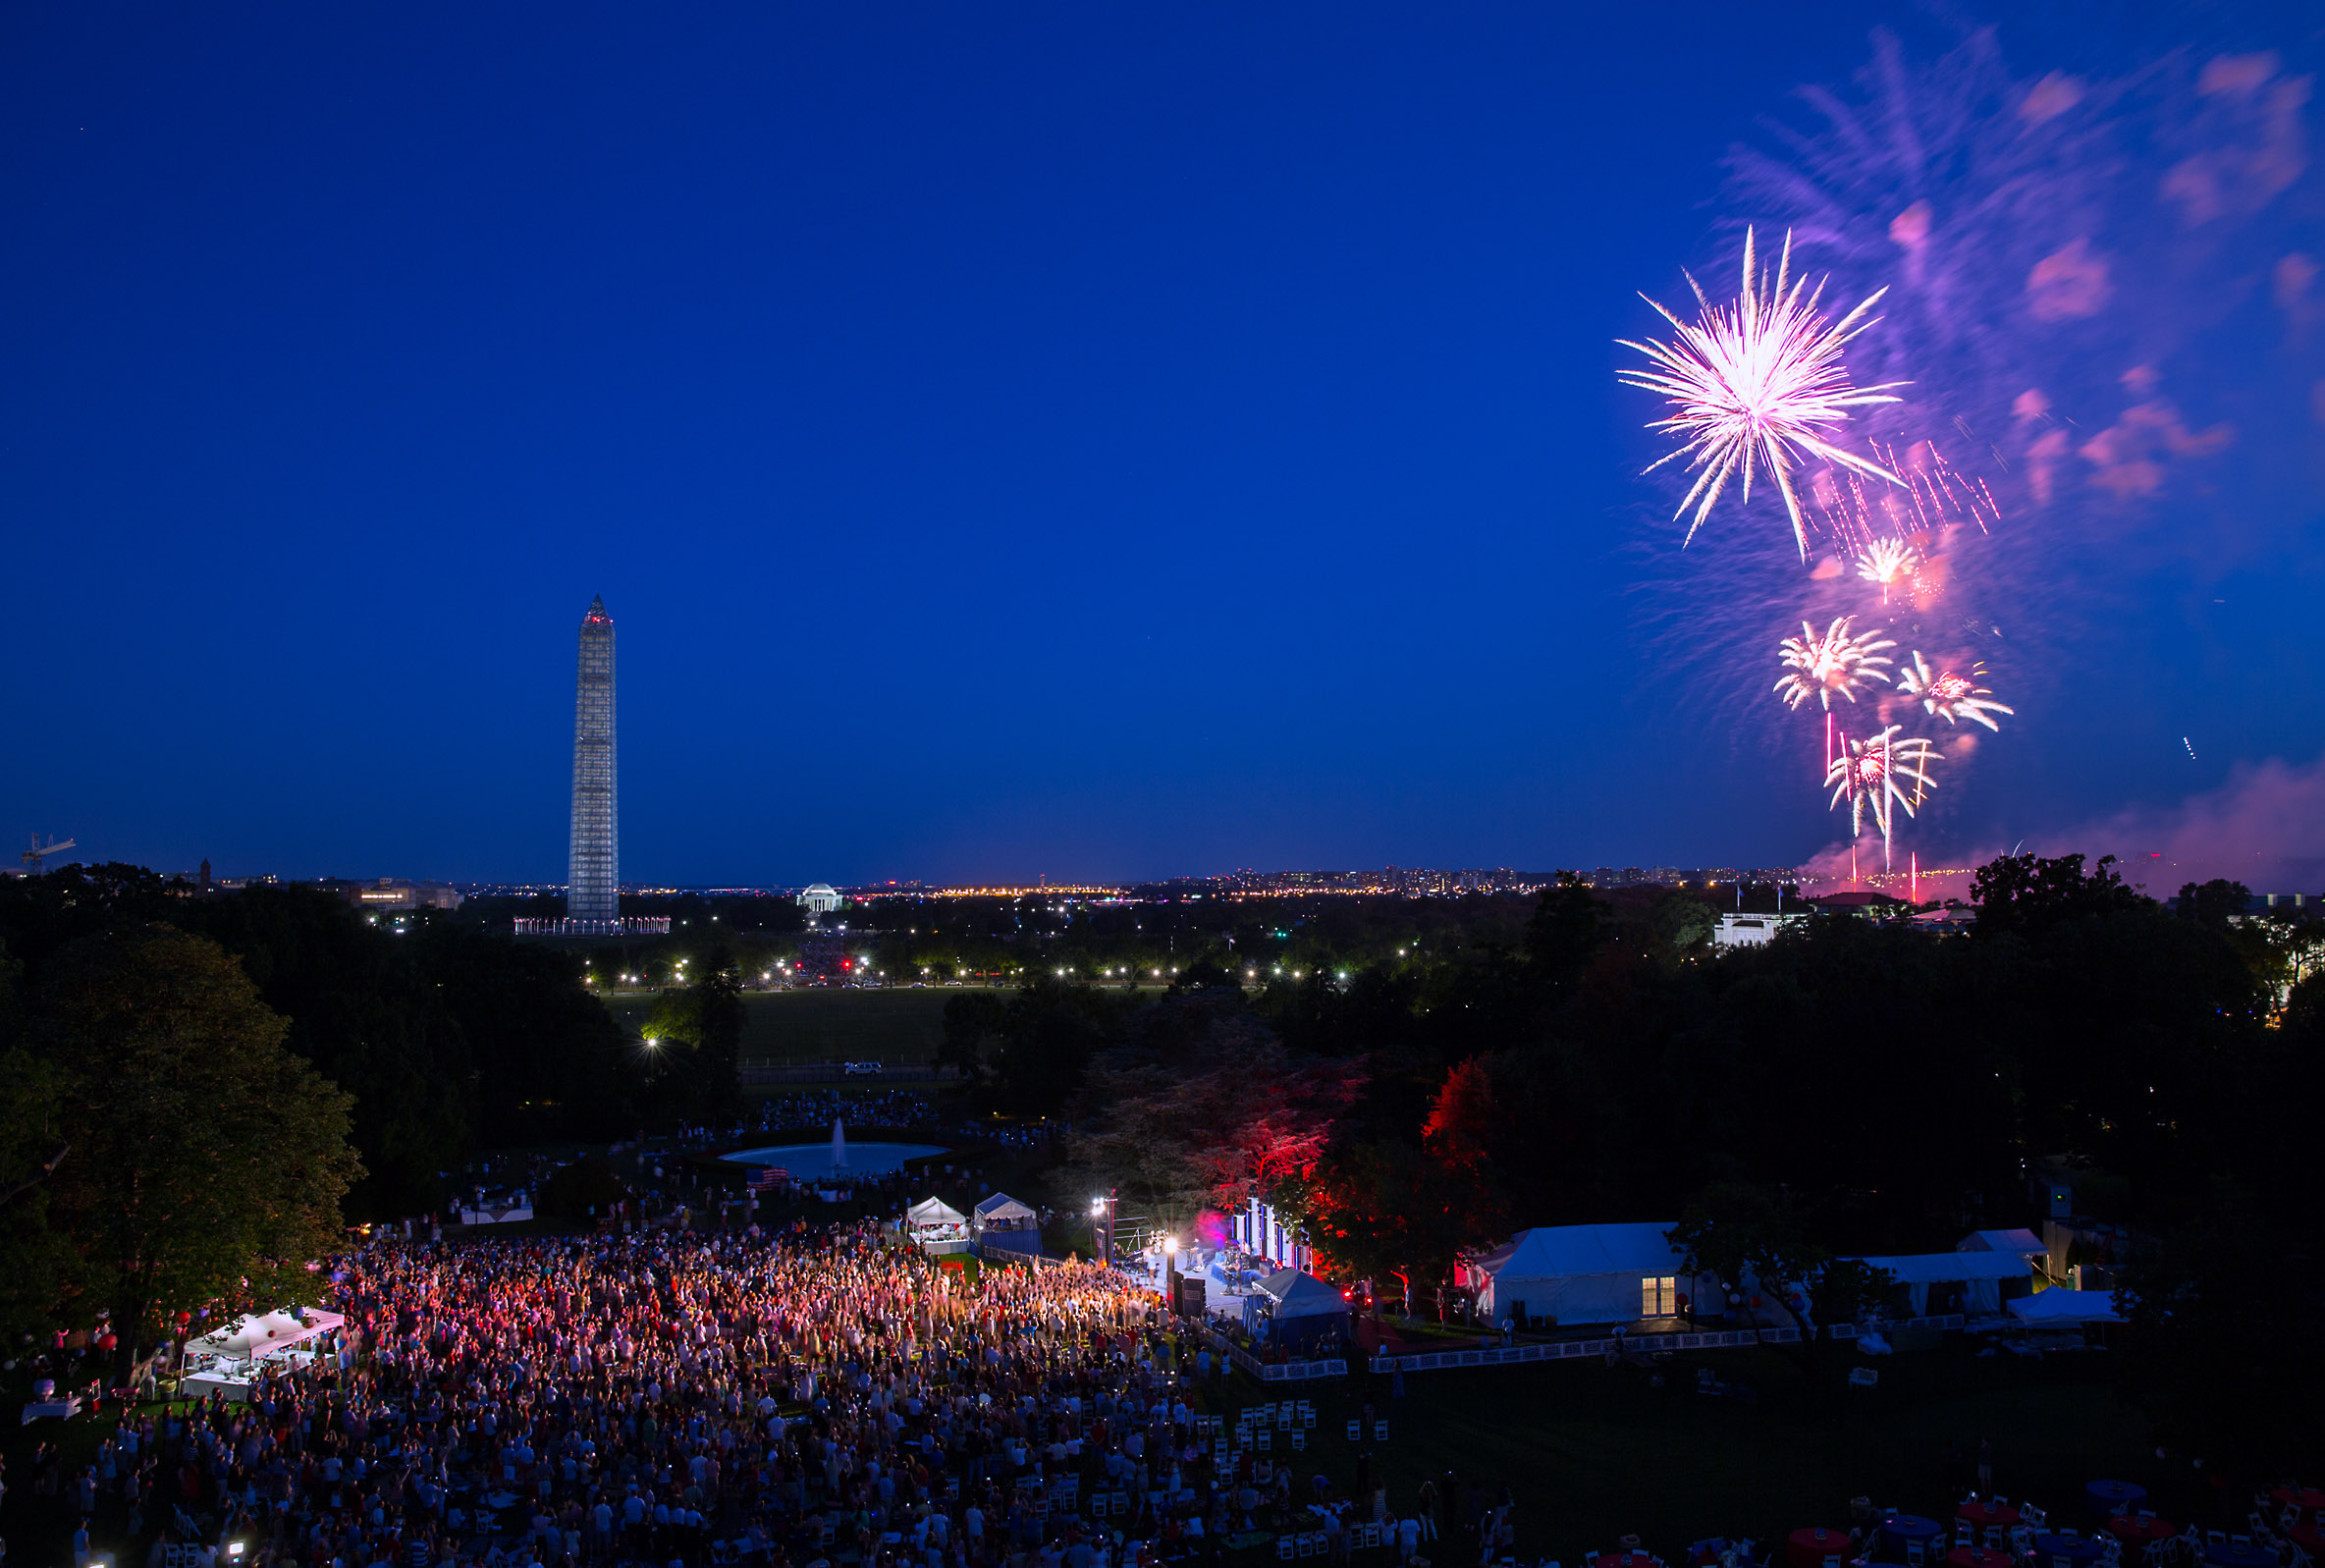 """July 4, 2013                               Pete Souza: """"Although I almost never have a tripod with me, I sometimes set up a tripod to capture the beginning of the fireworks. The band is supposed to be done with their music when the fireworks start, but this year they were still playing their last song and some of the lights from the stage were still illuminating the crowd on the South Lawn.""""President Barack Obama and First Lady Michelle Obama watch fireworks from the roof of the White House during a Fourth of July celebration for military families and White House Staff on the South Lawn, July 4, 2013."""